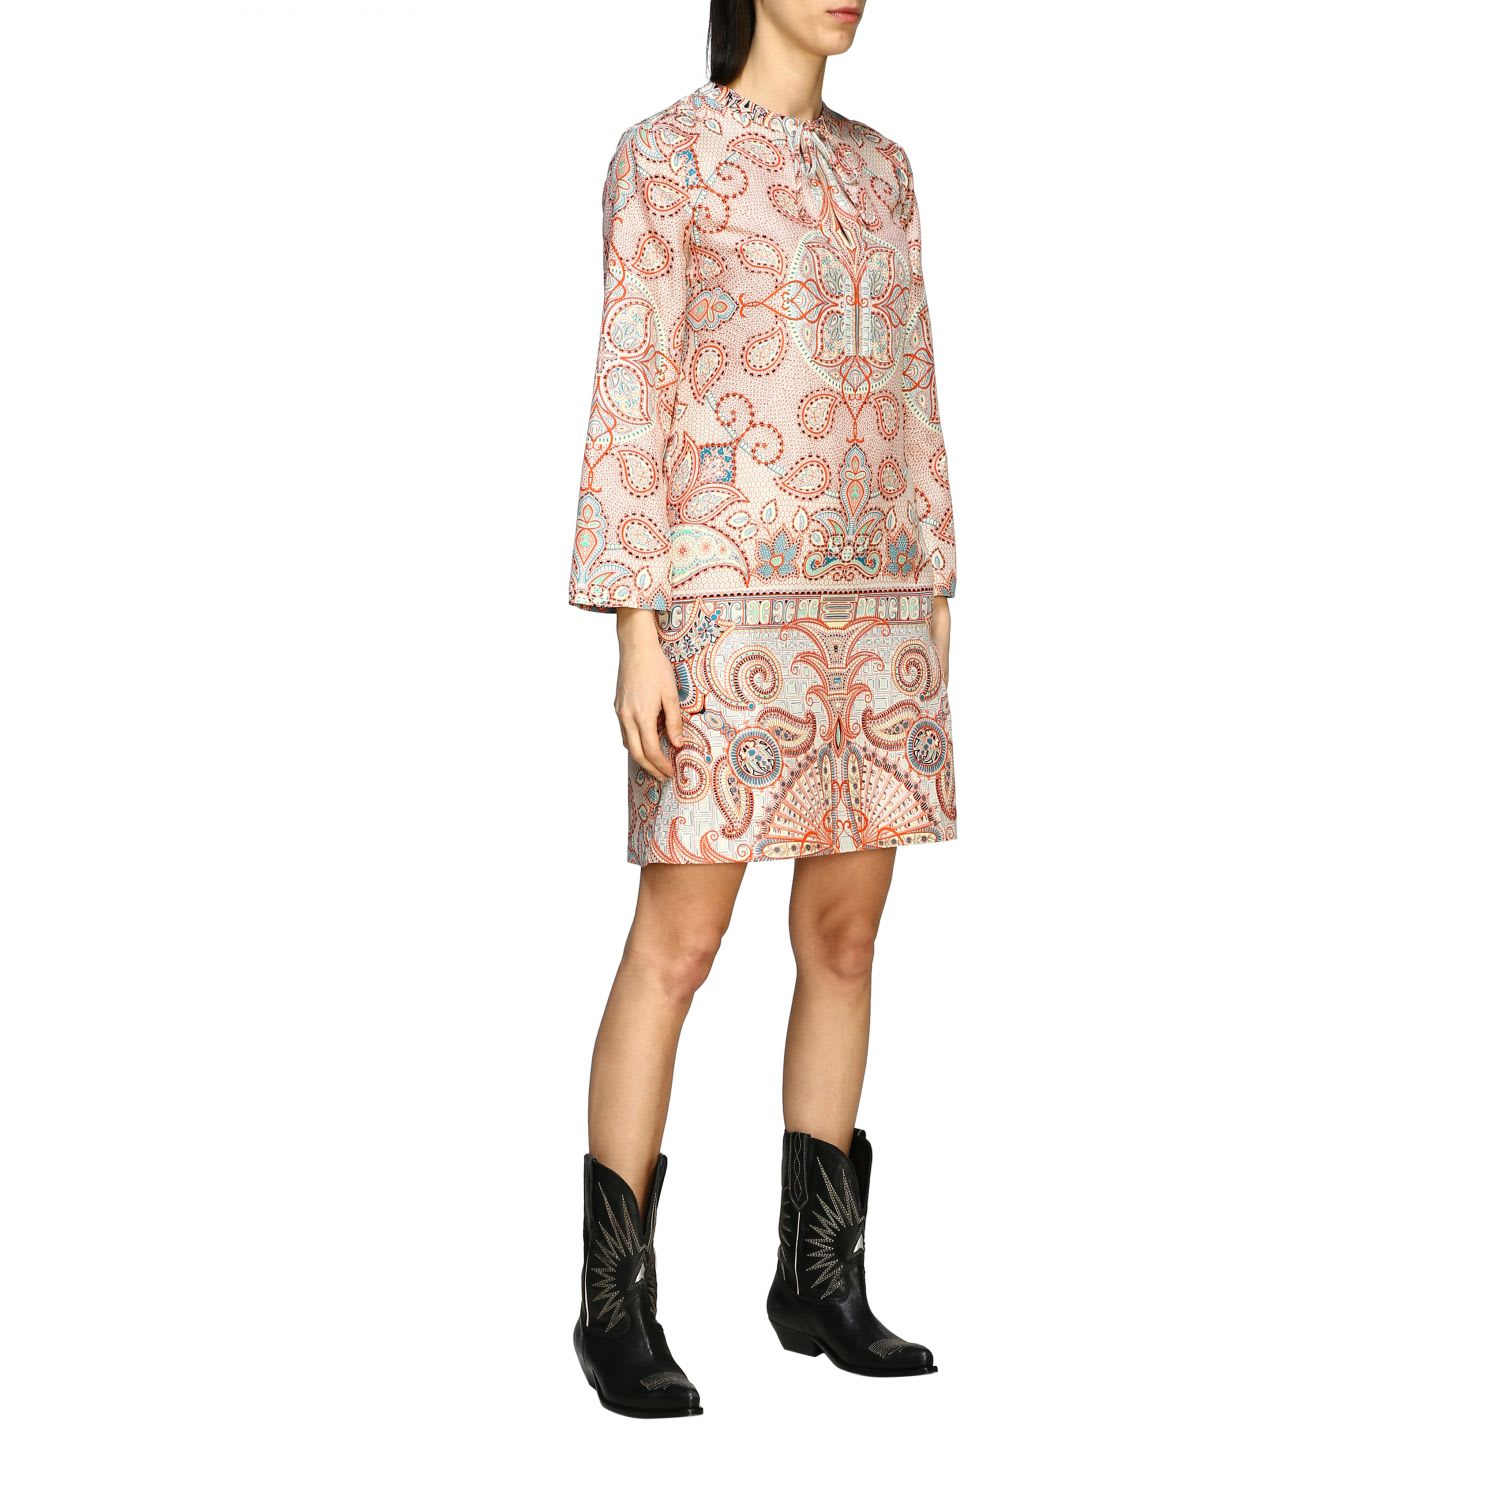 Buy Etro Dress Etro Silk Dress With Paisley Print online, shop Etro with free shipping